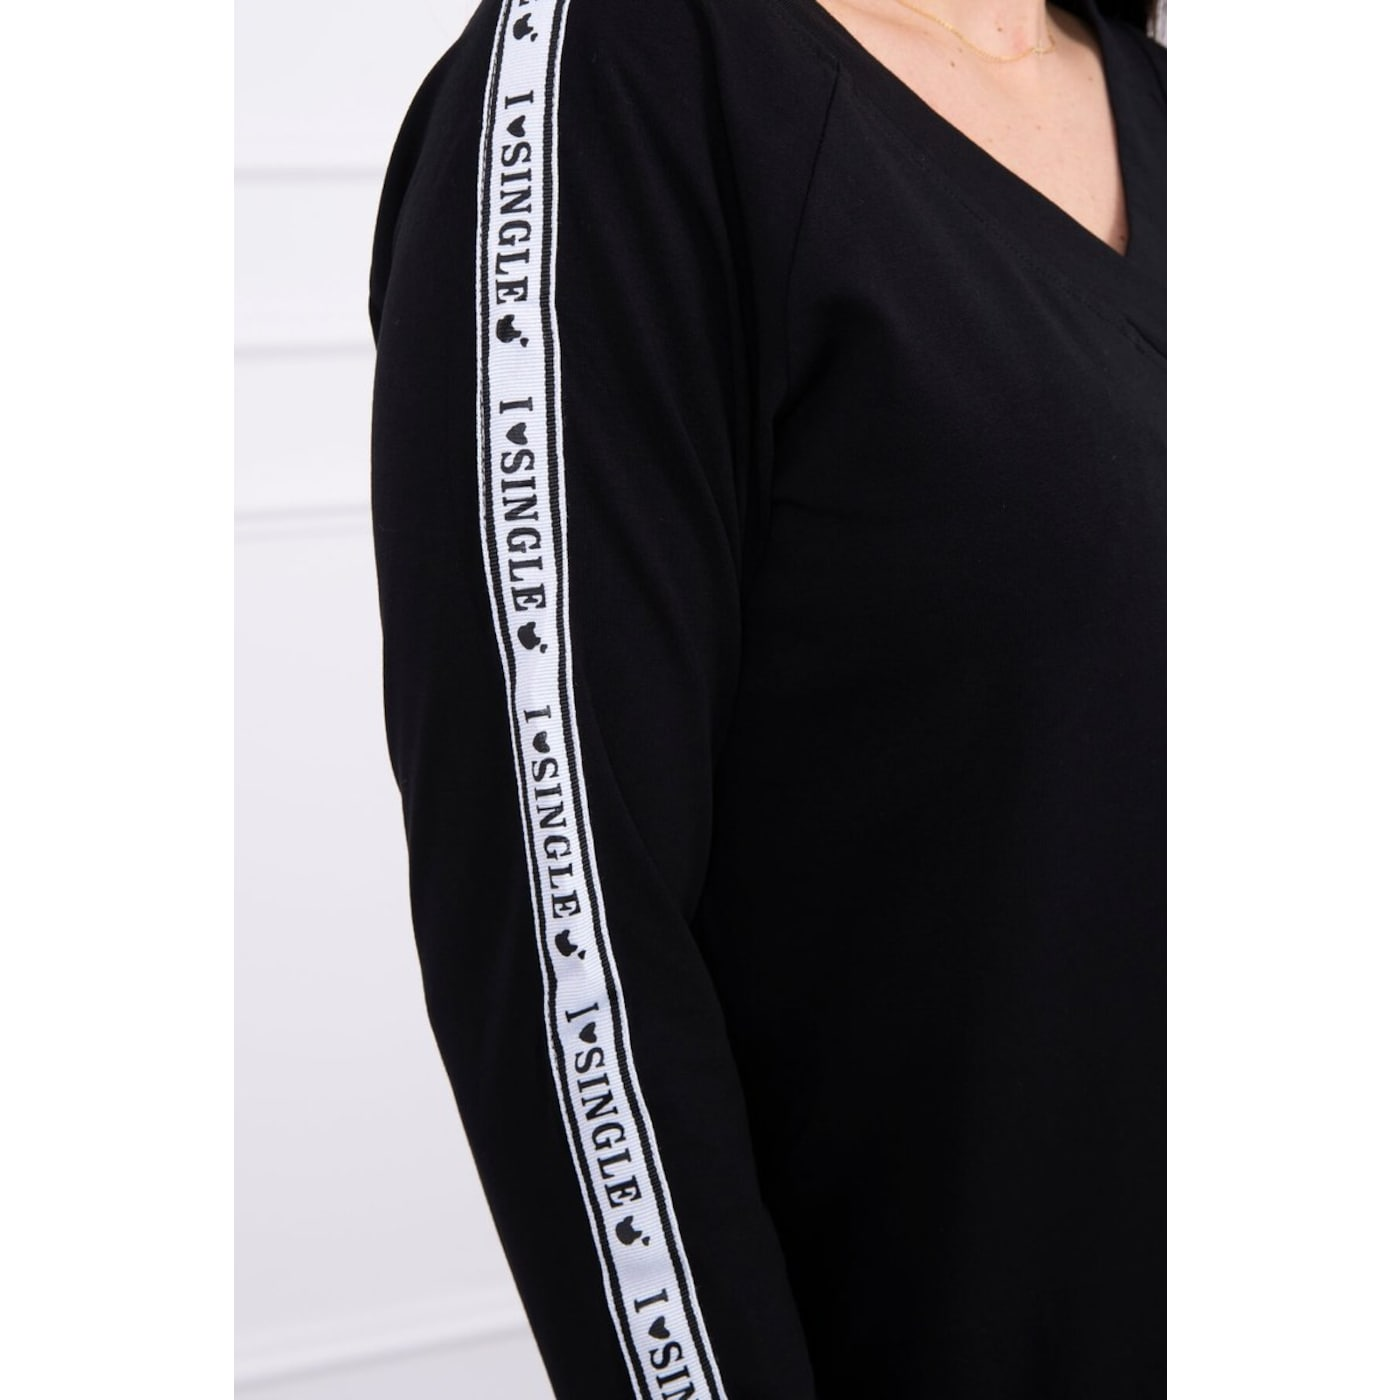 Blouse with stripe on the sleeves black S/M - L/XL